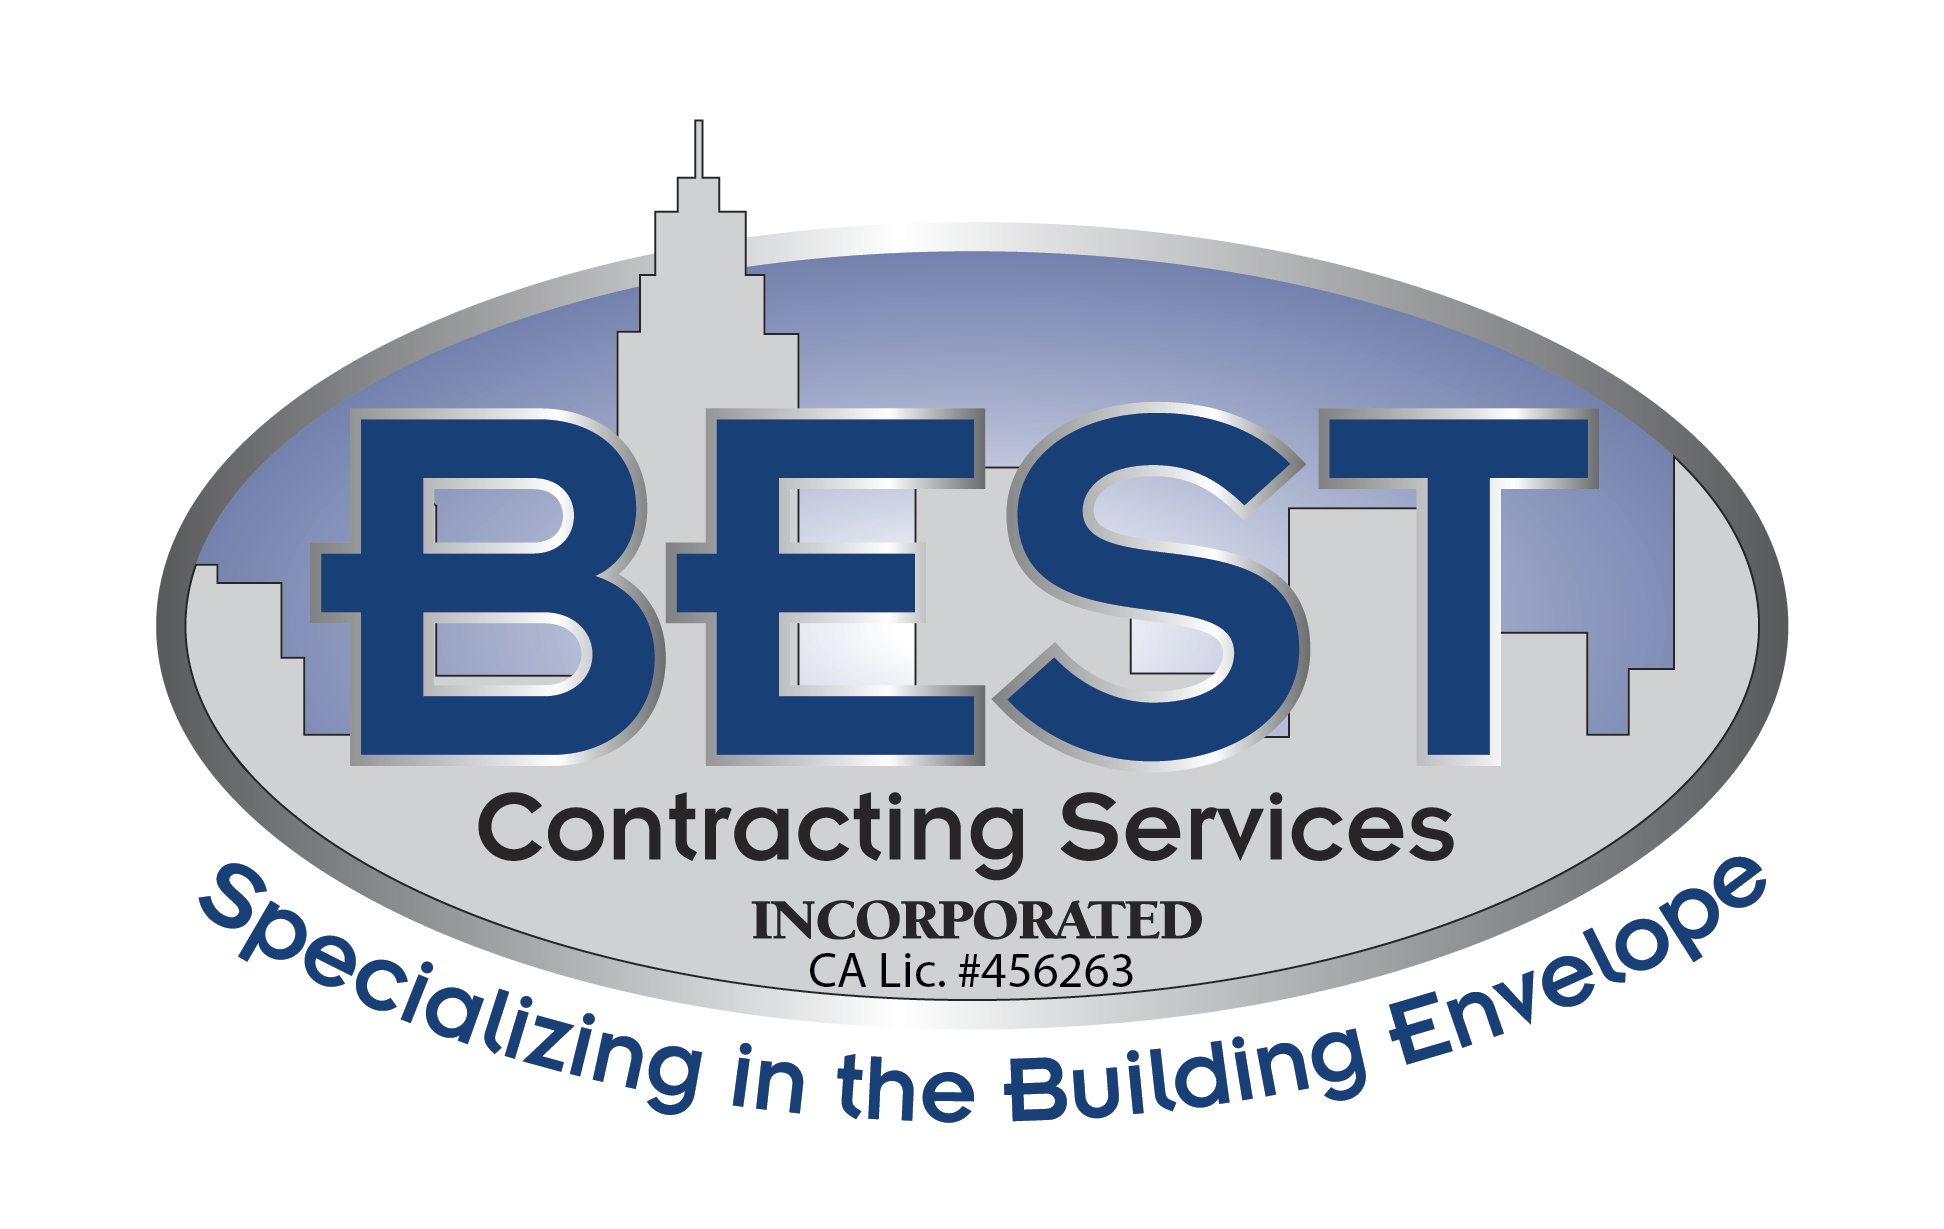 BEST Contracting Services, Inc